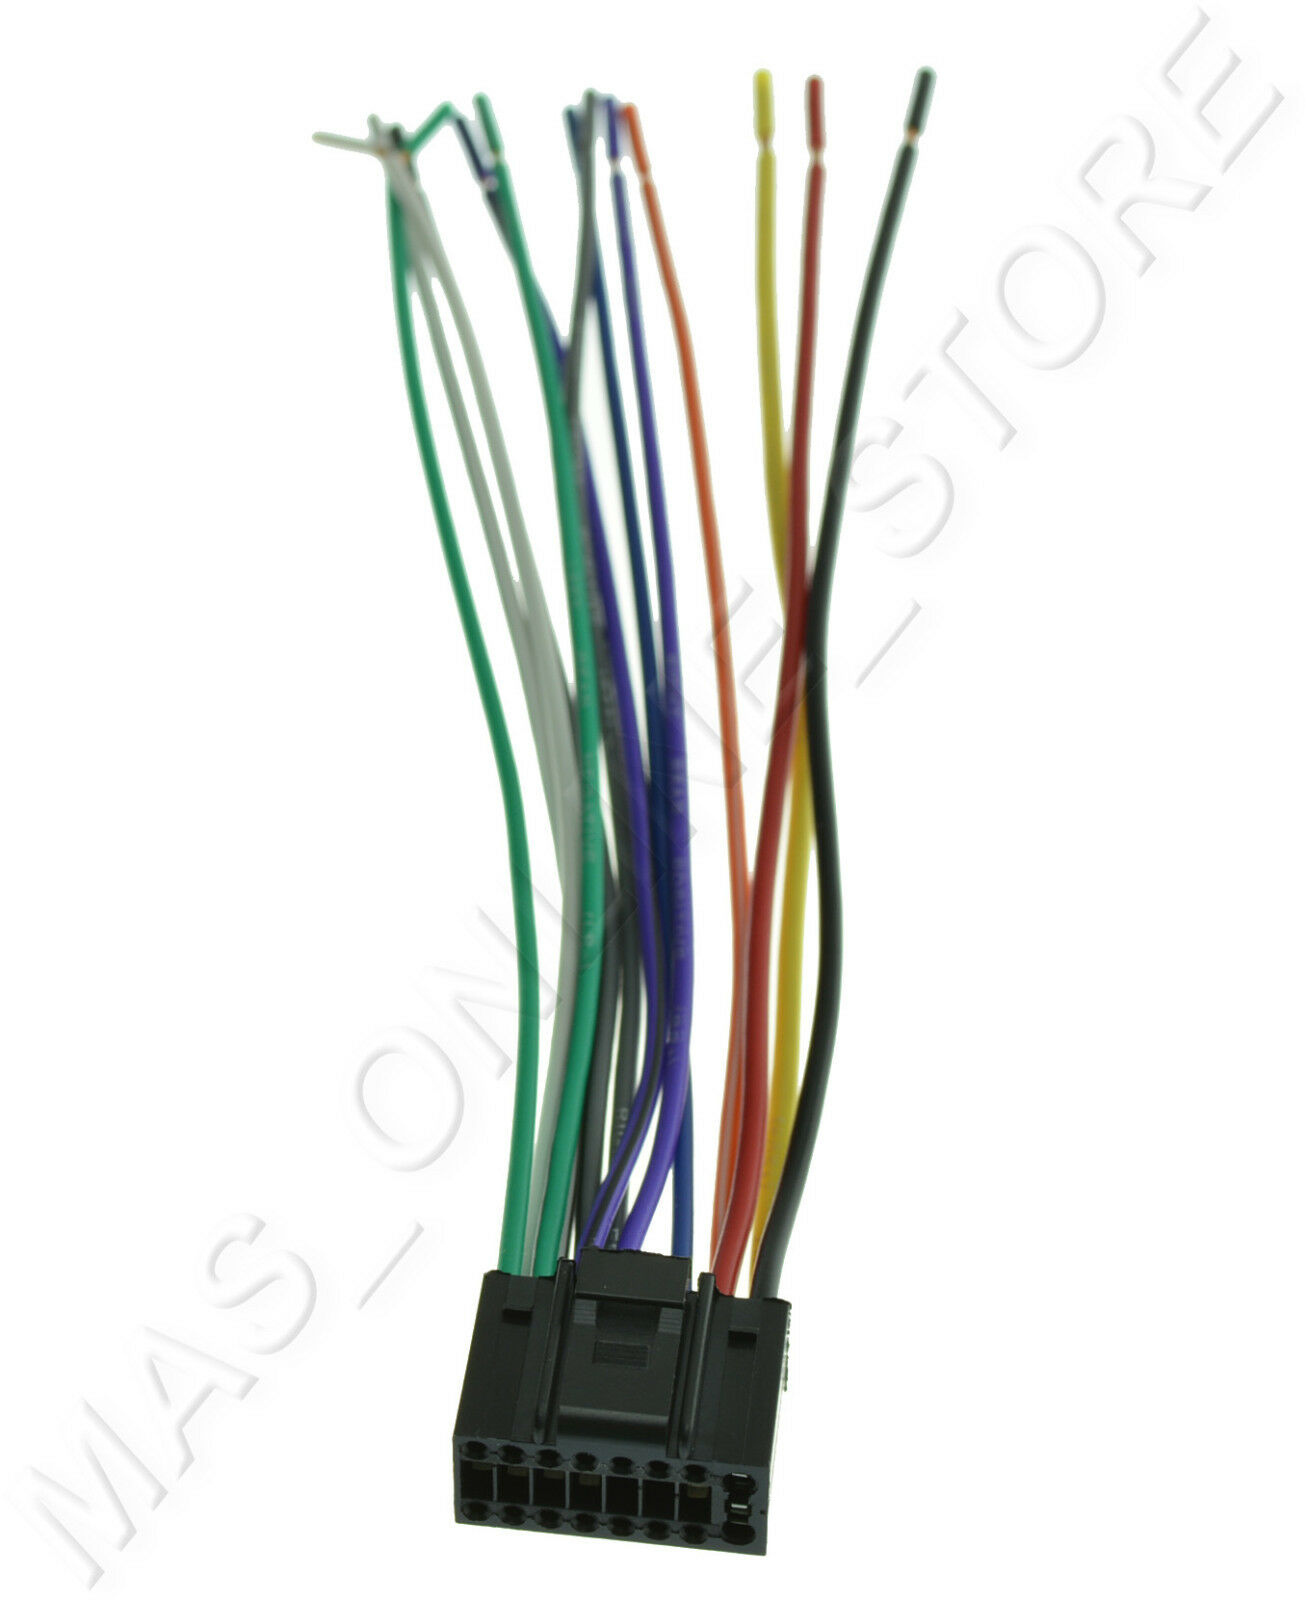 s l1600 wire harness for jvc kd s27 kds27 *pay today ships today* ebay jvc kd-s27 wiring harness at readyjetset.co